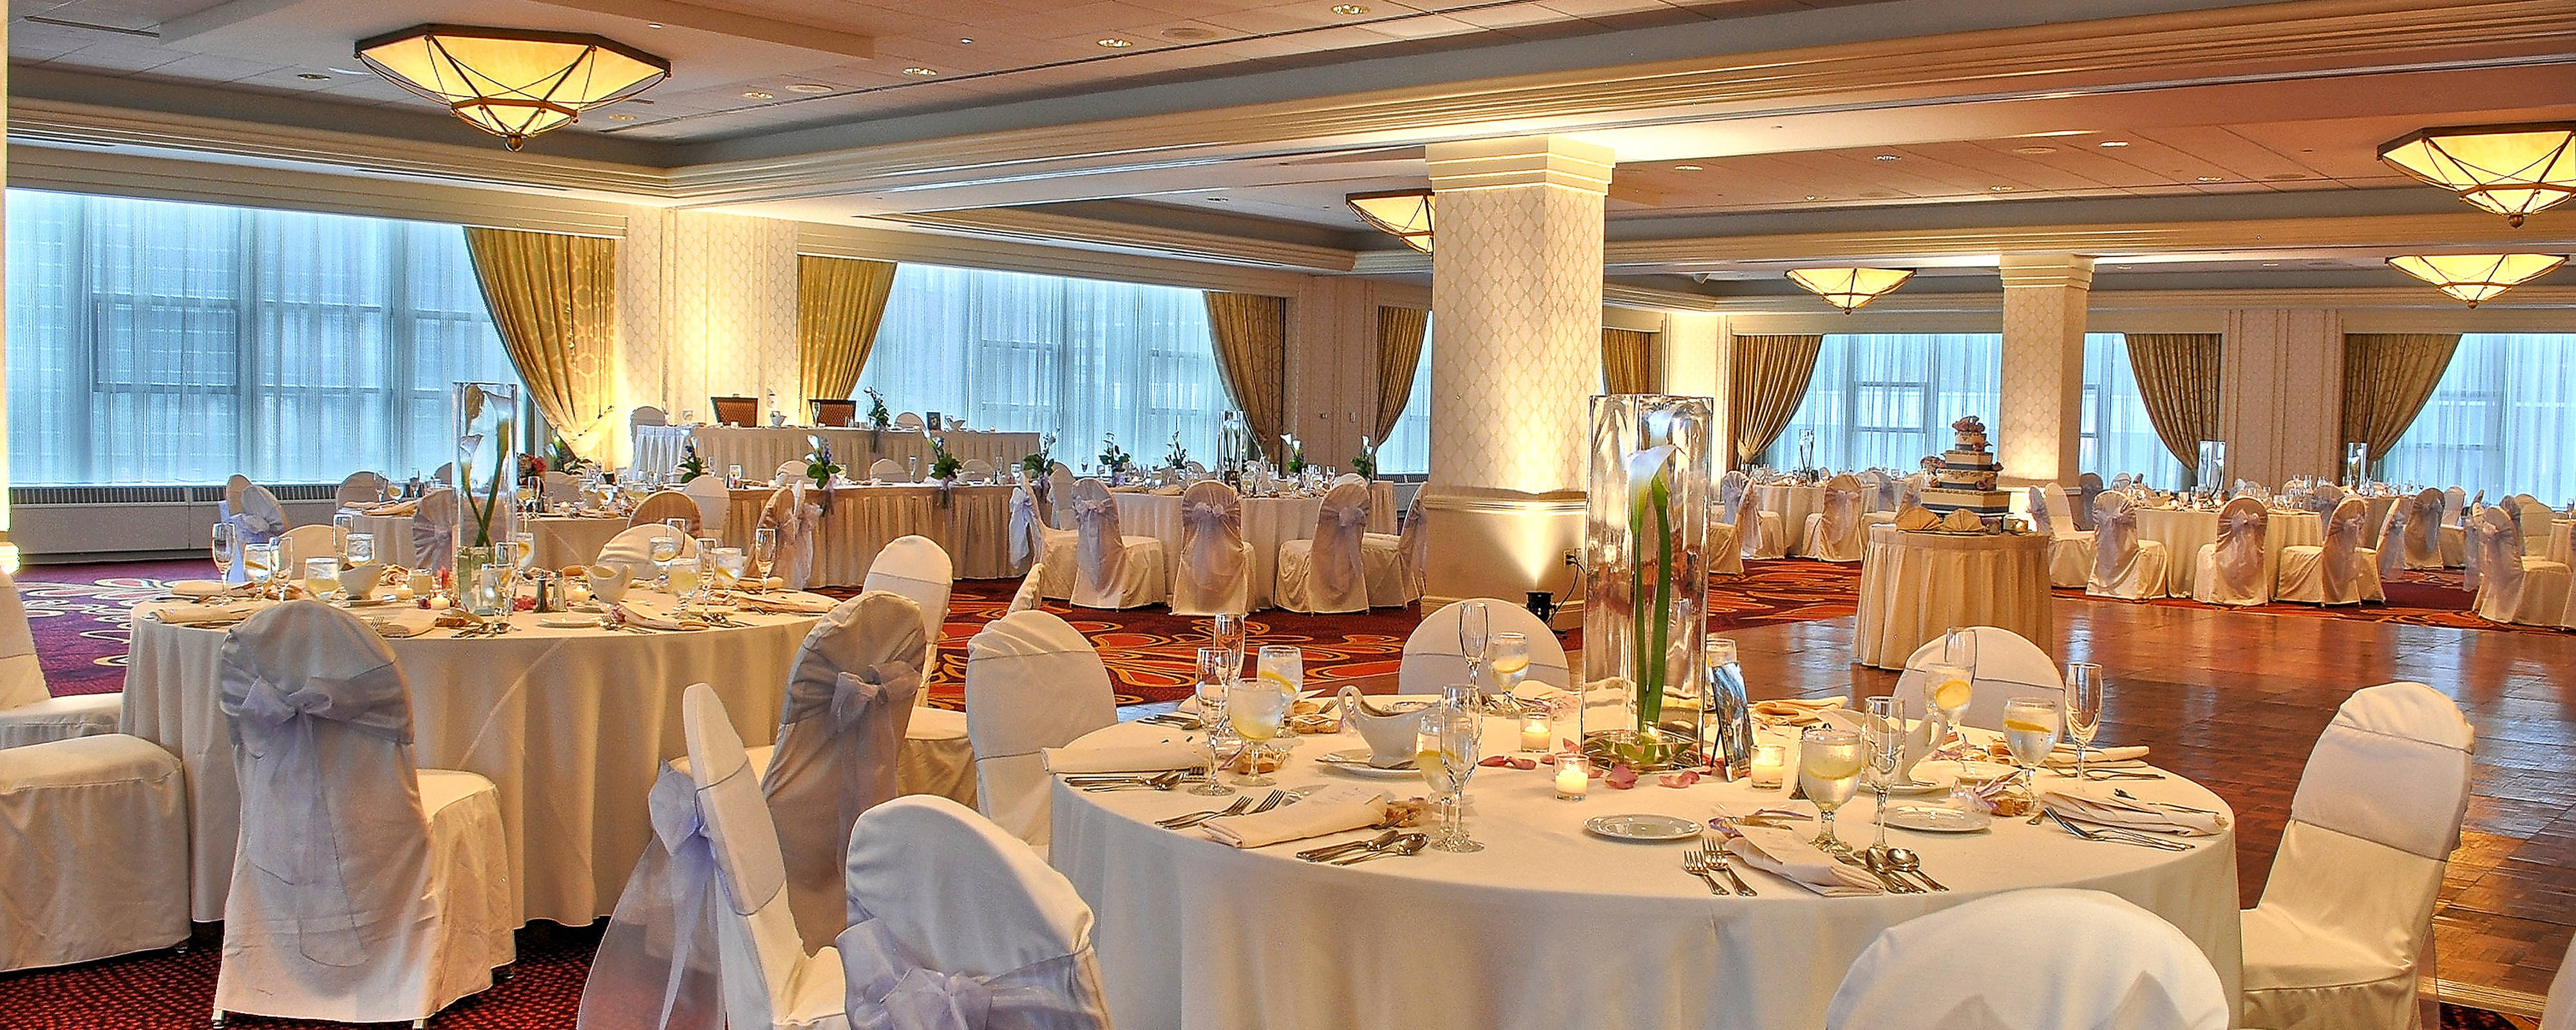 Results For Wedding Reception Venues Pittsburgh Pennsylvania